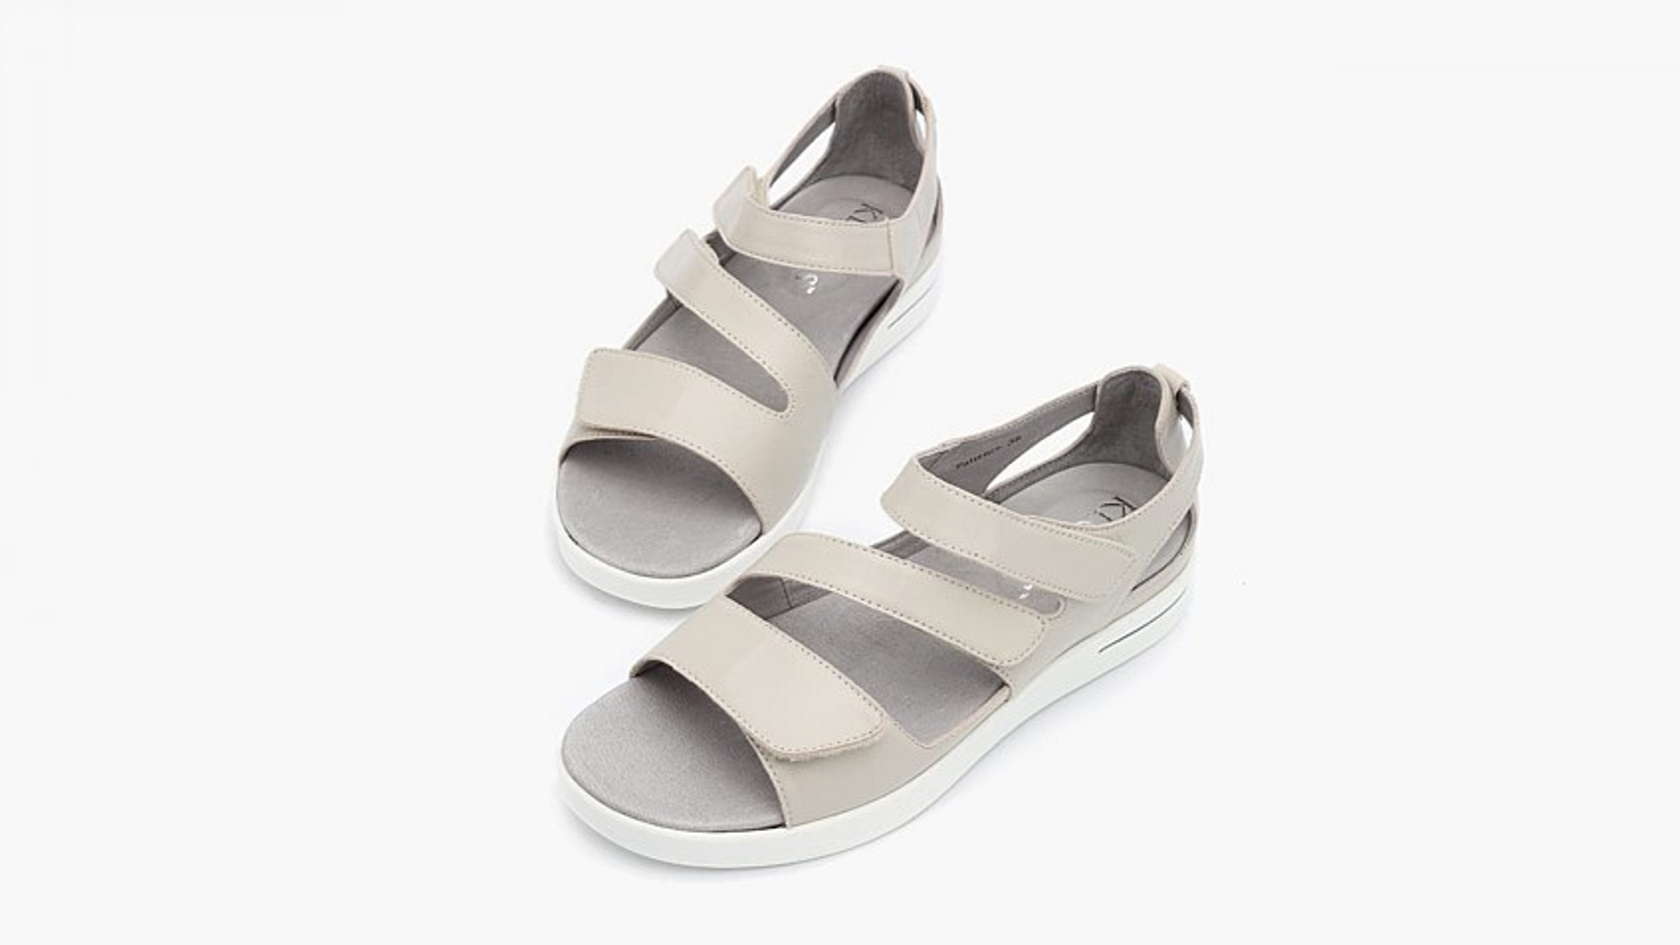 Pair of Taupe Patience sandals on a white background